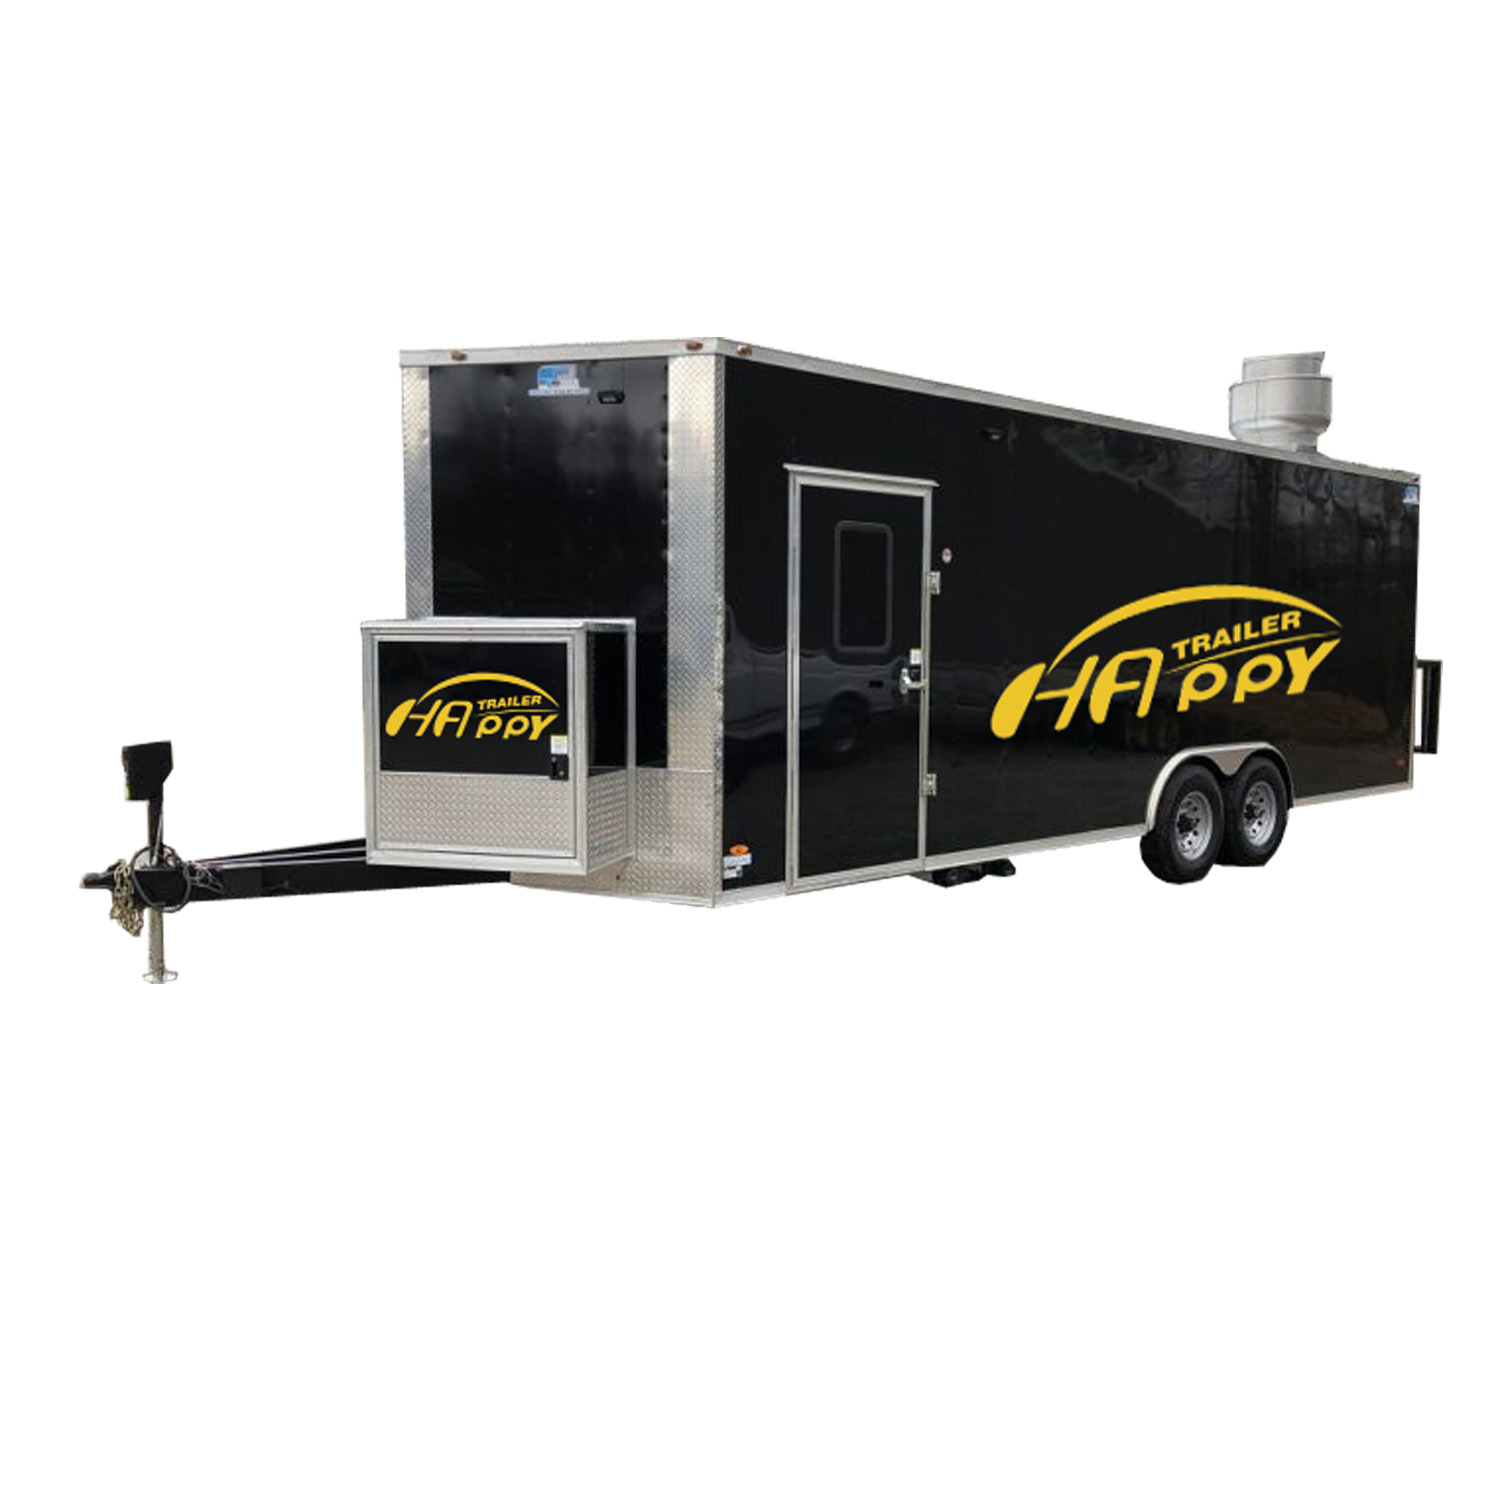 China Custom Mobile Coffee Bbq Food Truck For Sale High Quality Durable Food Trailer China Food Trailer Food Truck